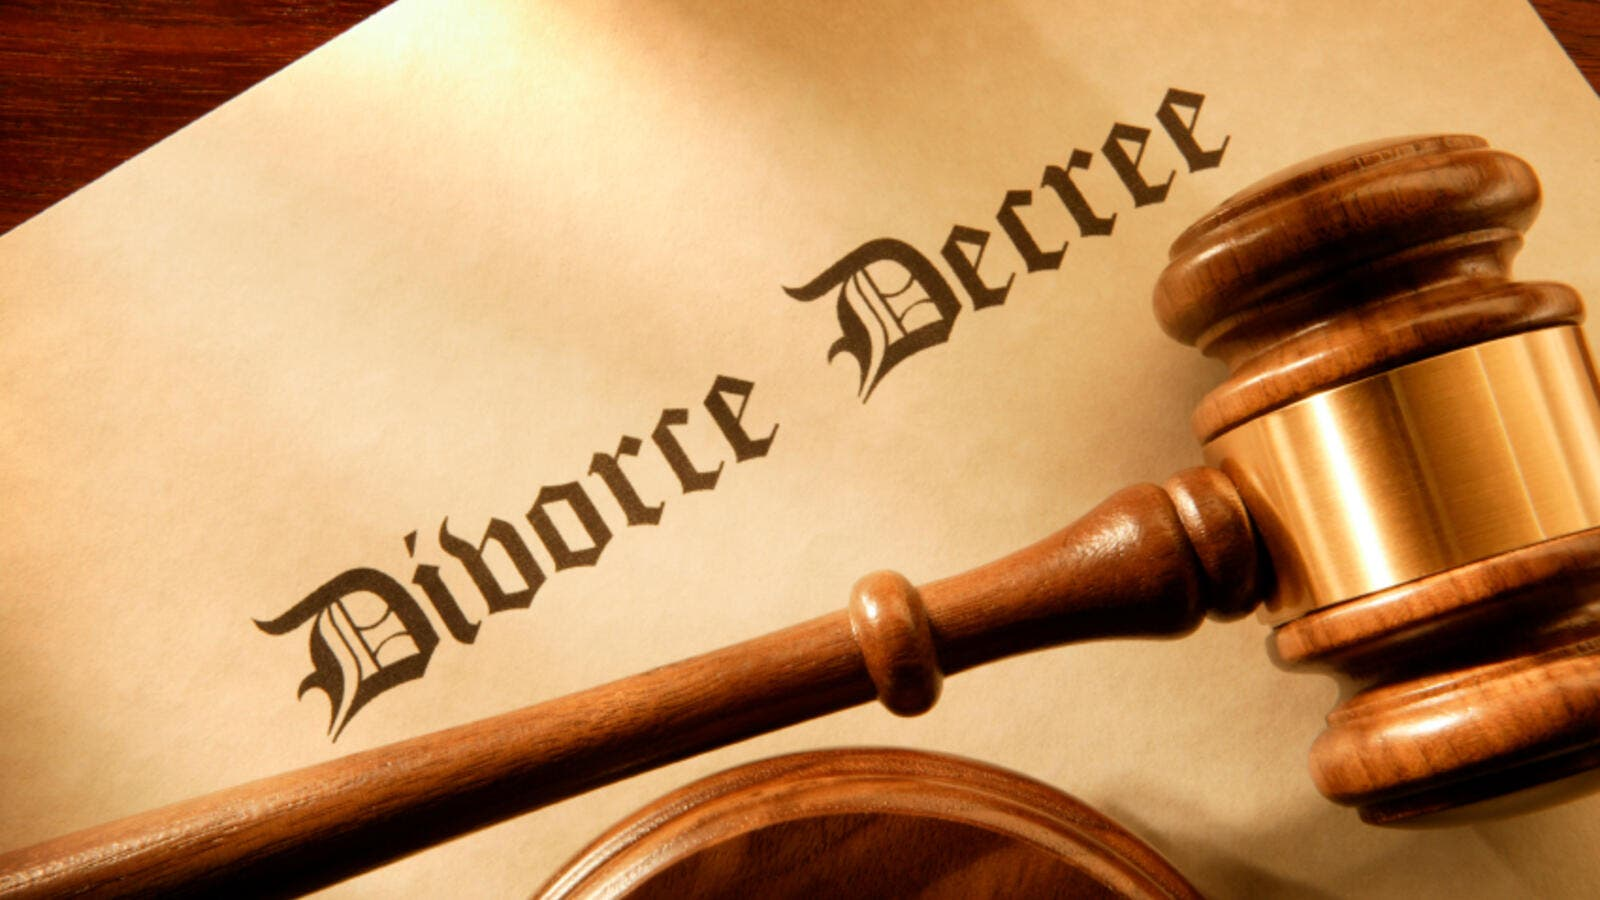 Divorce rates are on the rise in UAE. (Shutterstock)